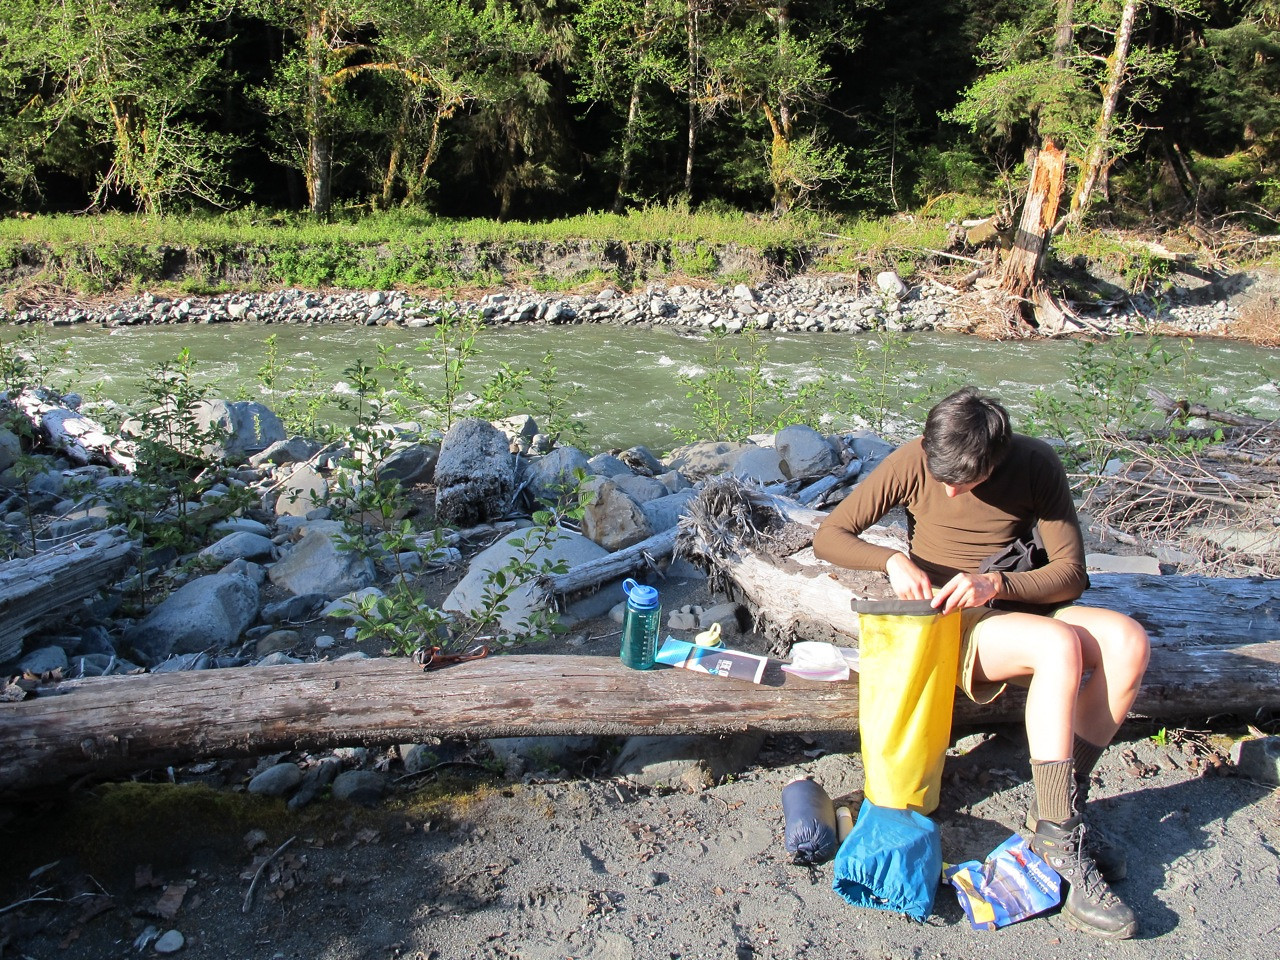 Getting ready to prepare dinner on an island in the Quinault river.